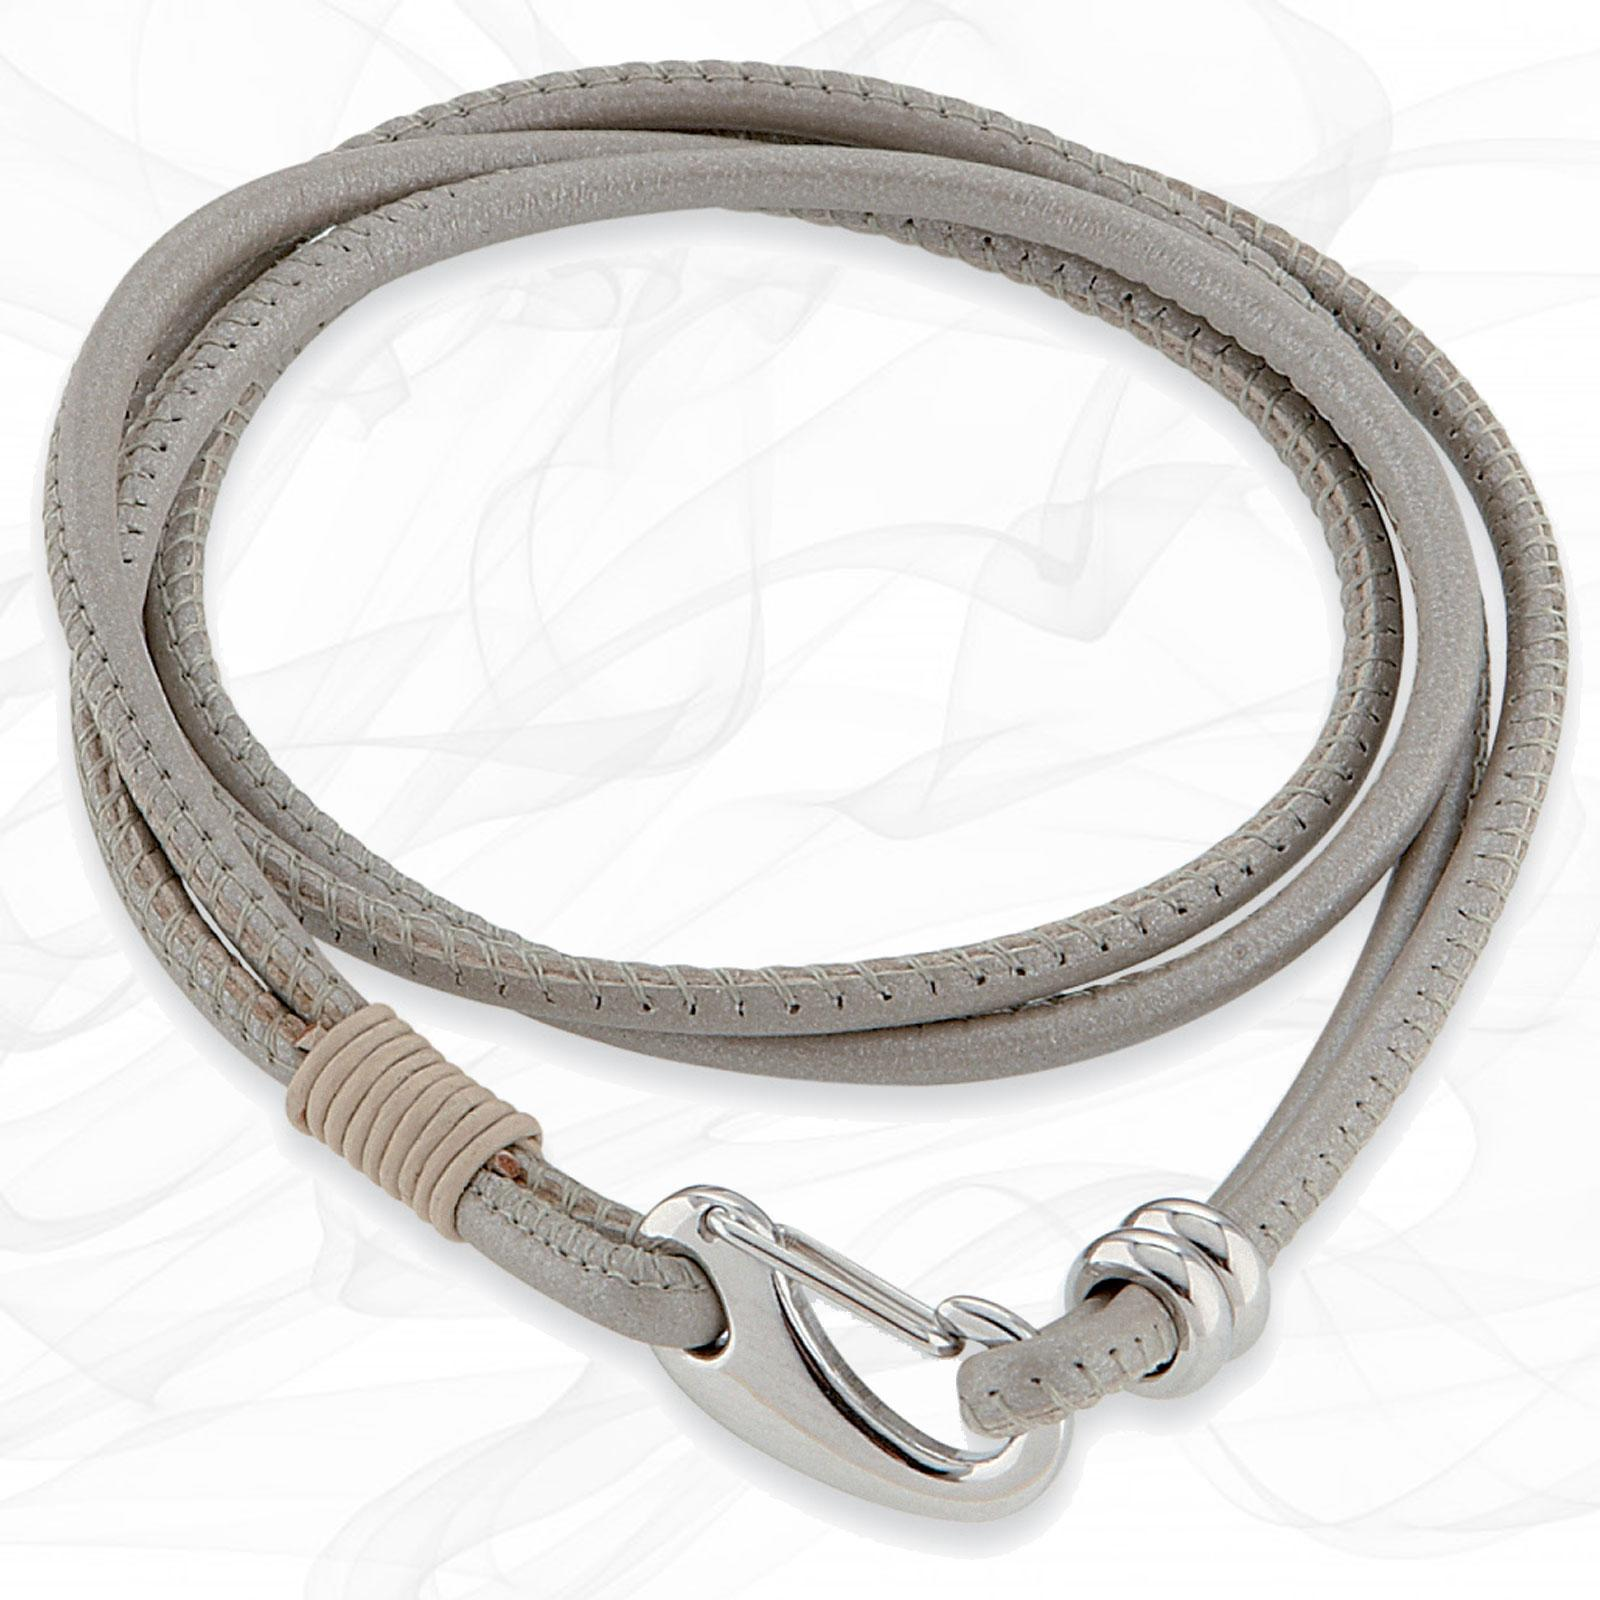 Mens//Ladies 5mm Nappa Leather Bracelet-925 Sterling Silver Clasp-Black Wristband